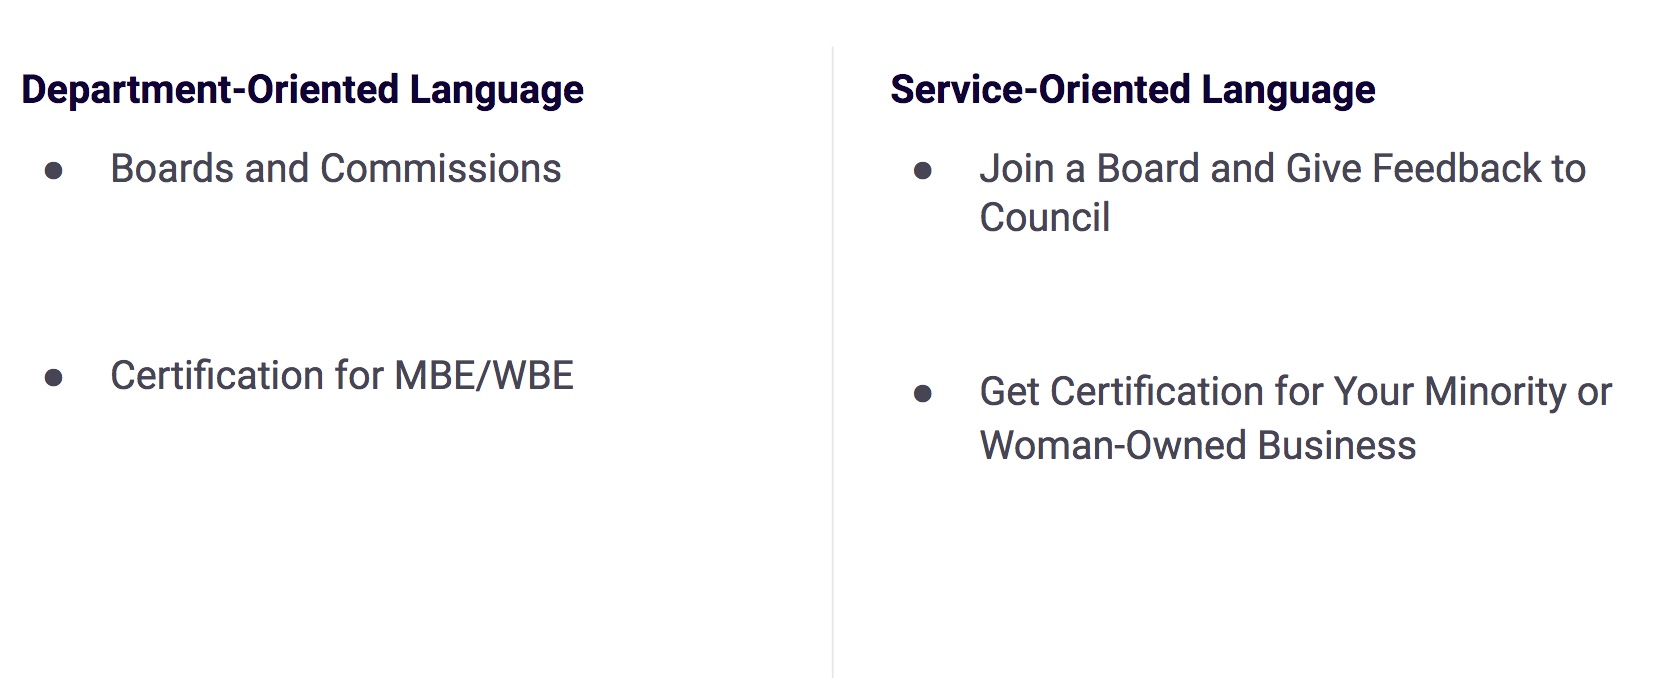 There are two columns of text. The title of the first column is: Department-Oriented Language. The first bullet point reads Boards and Commissions. The second bullet point reads, Certification for MBE/WBE. The title of the second column is: Service-Oriented Language. The first bullet point reads Join a board and give feedback to council. The second bullet point reads Get certification for your Minority or Women-Owned Business.